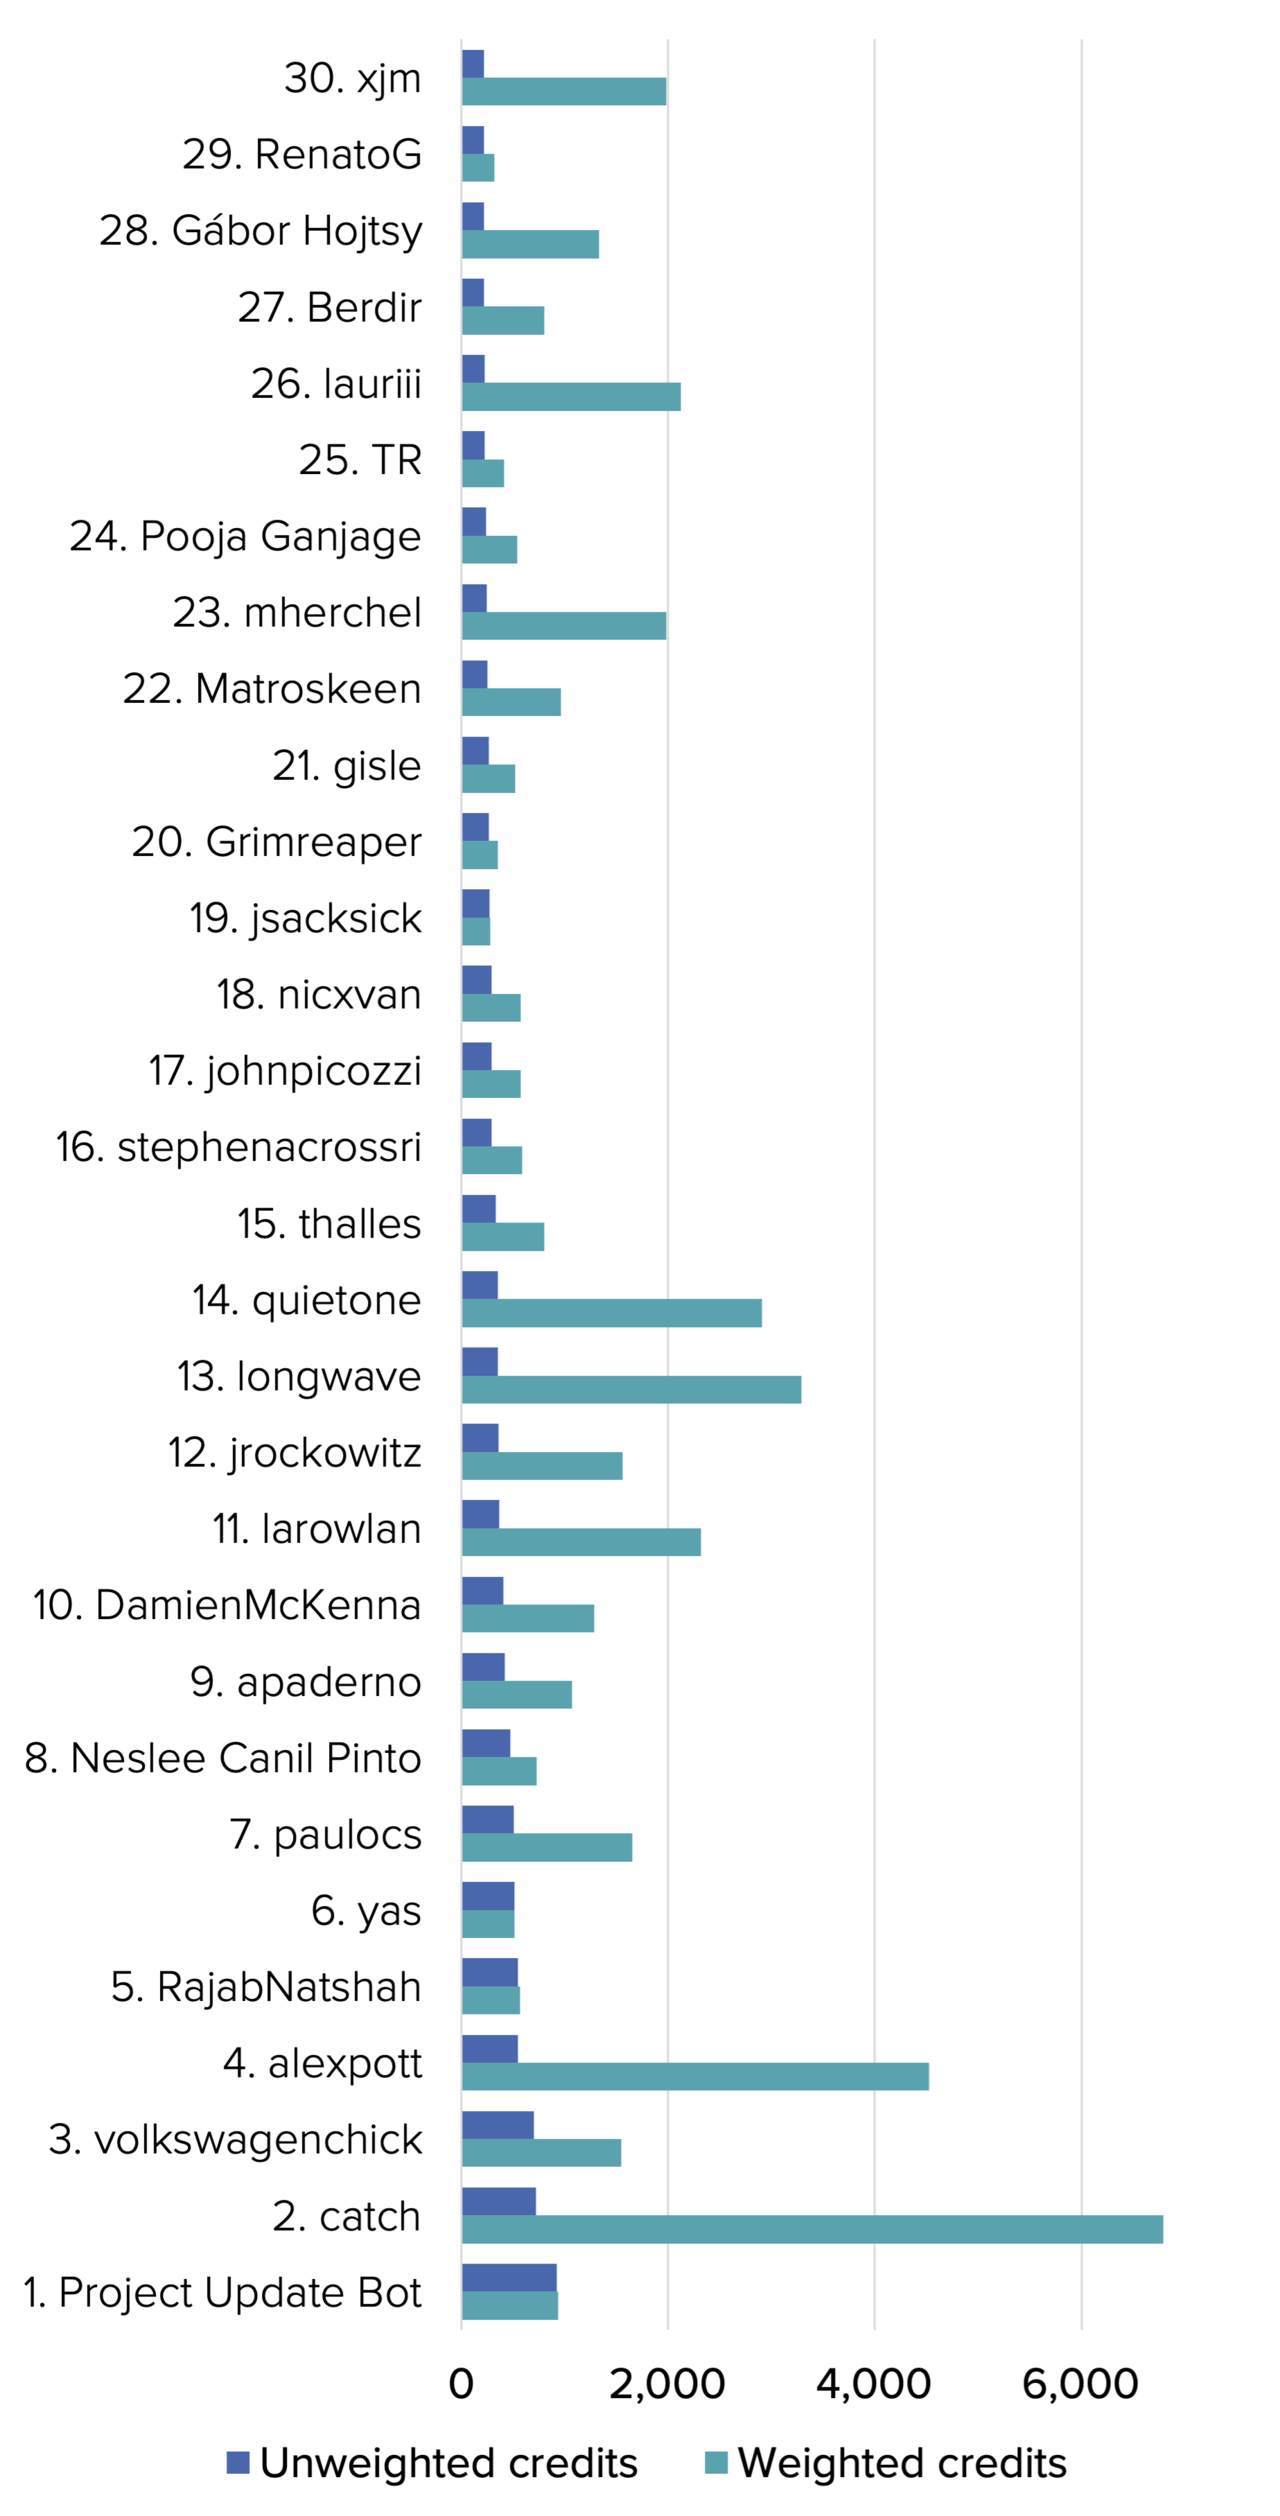 A graph showing the top 30 individual contributors ranked by the quantity of their contributions.